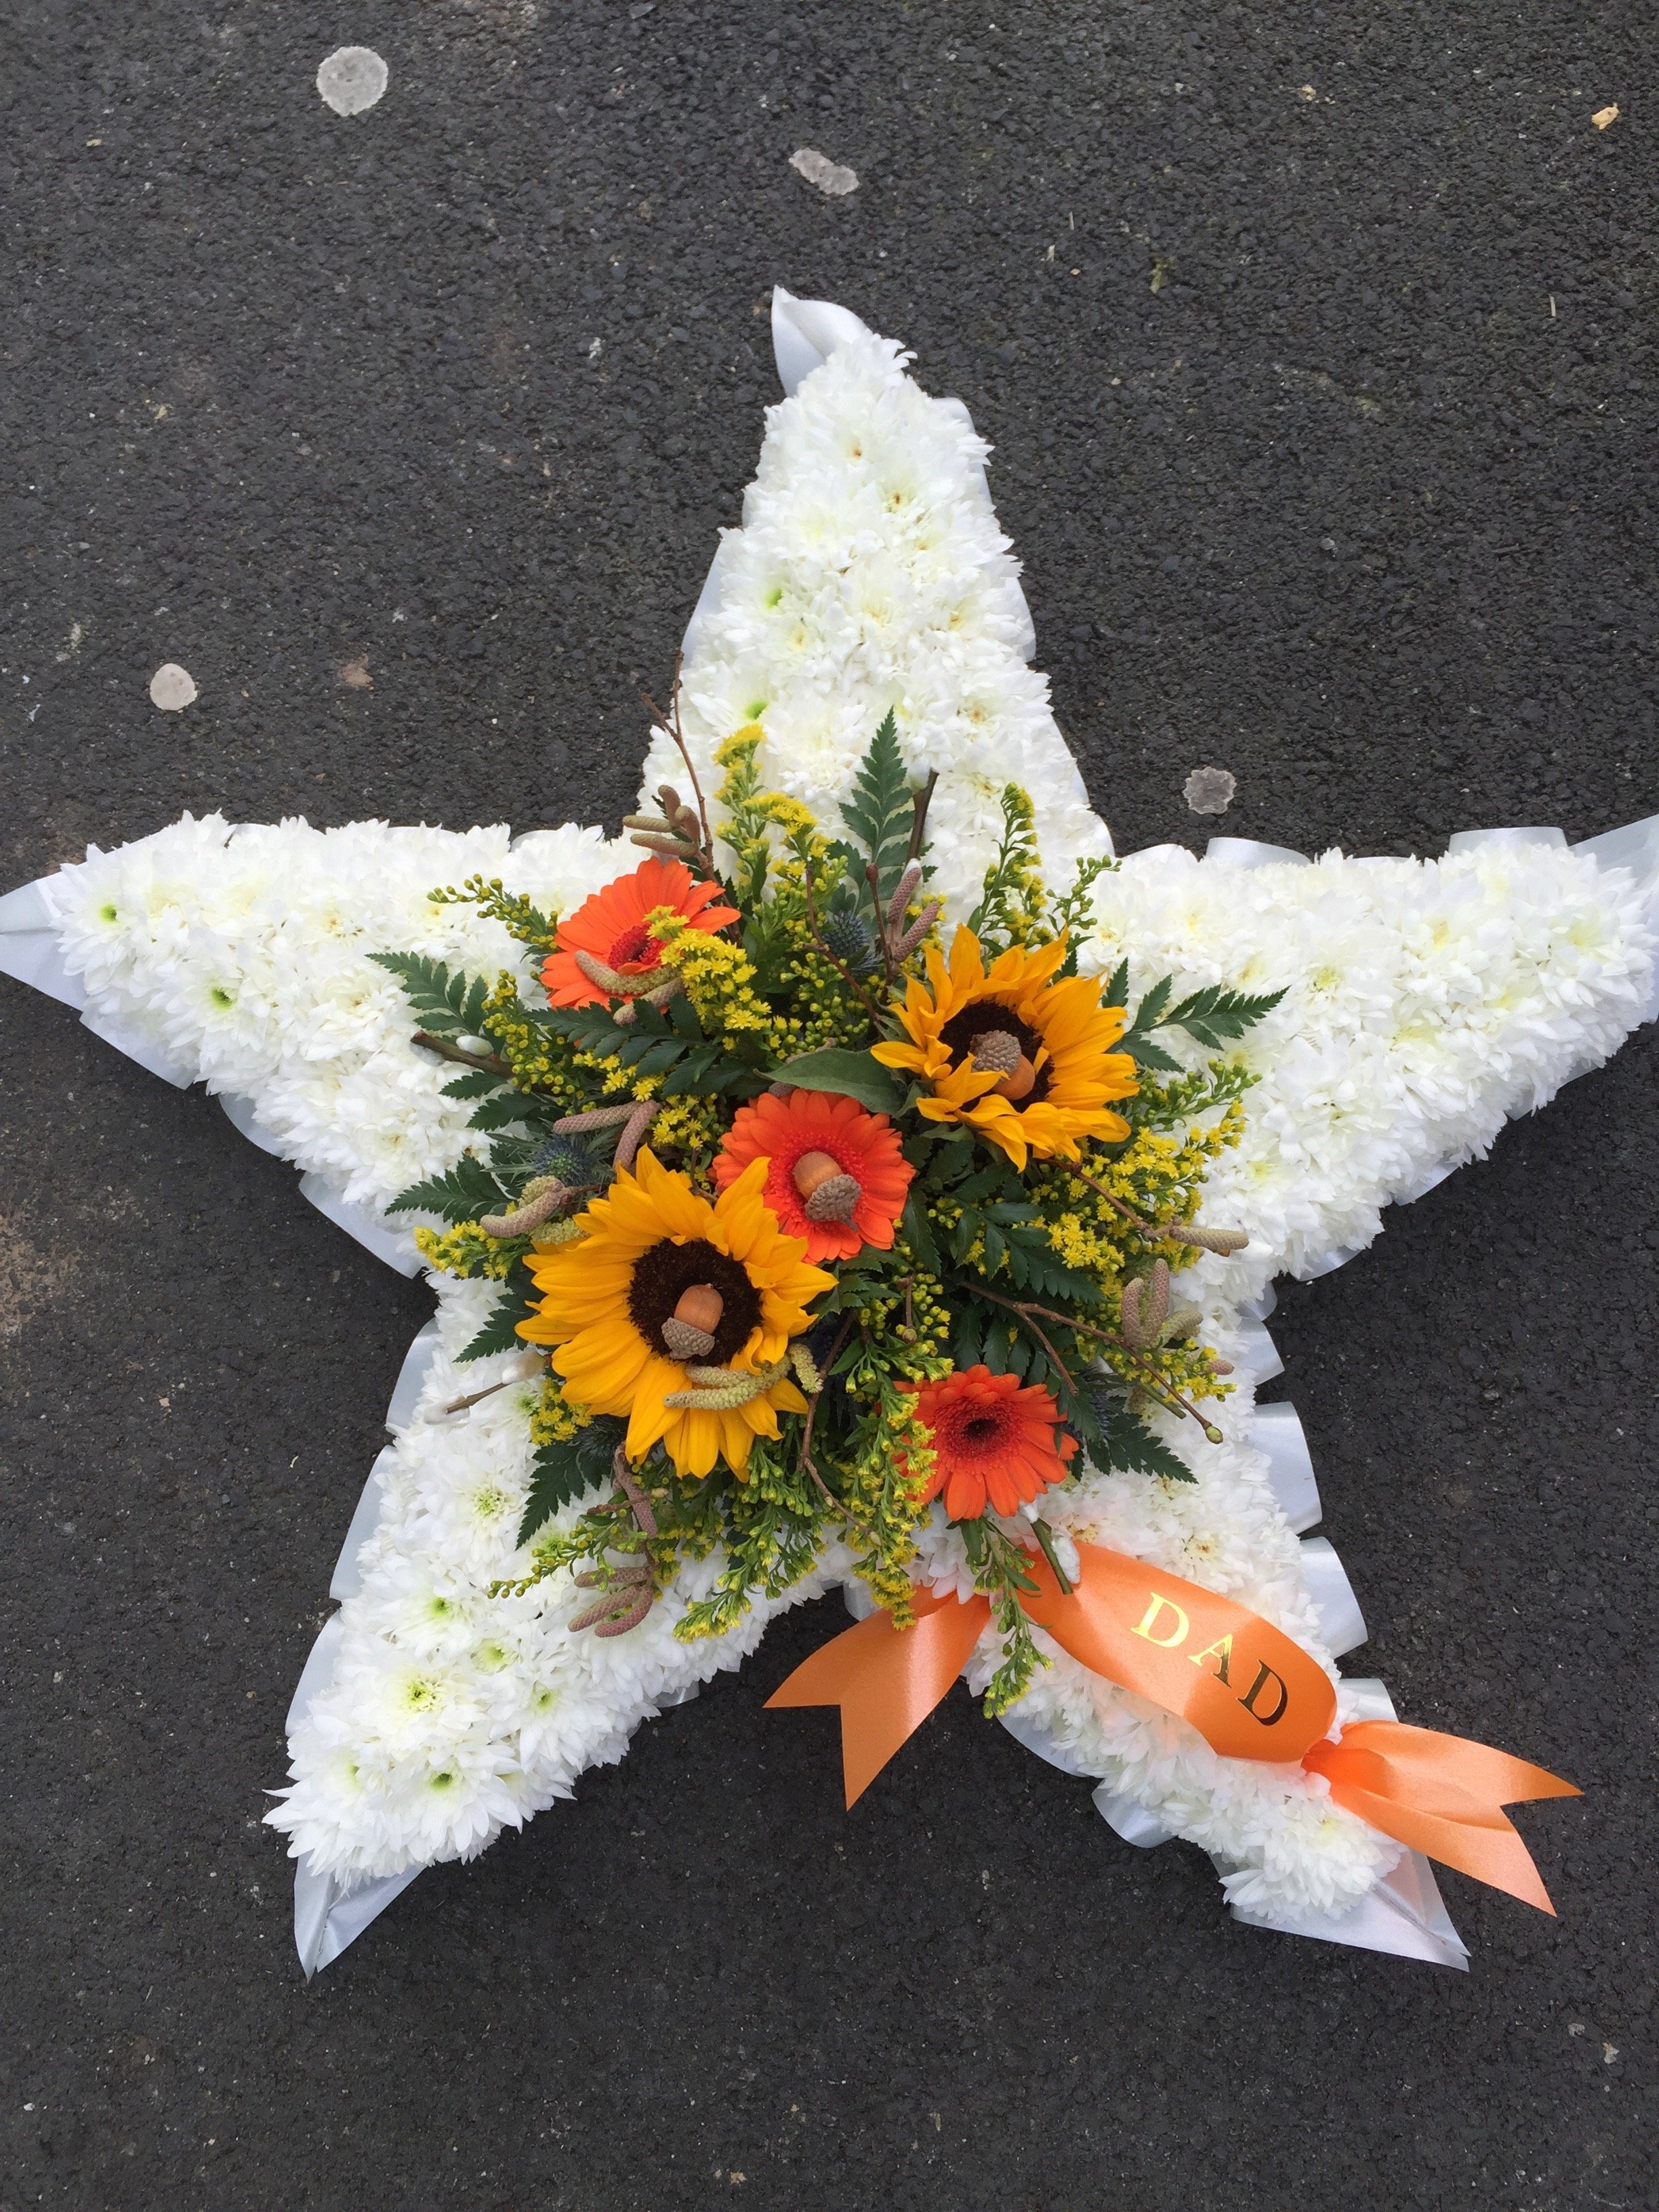 Star bouquets